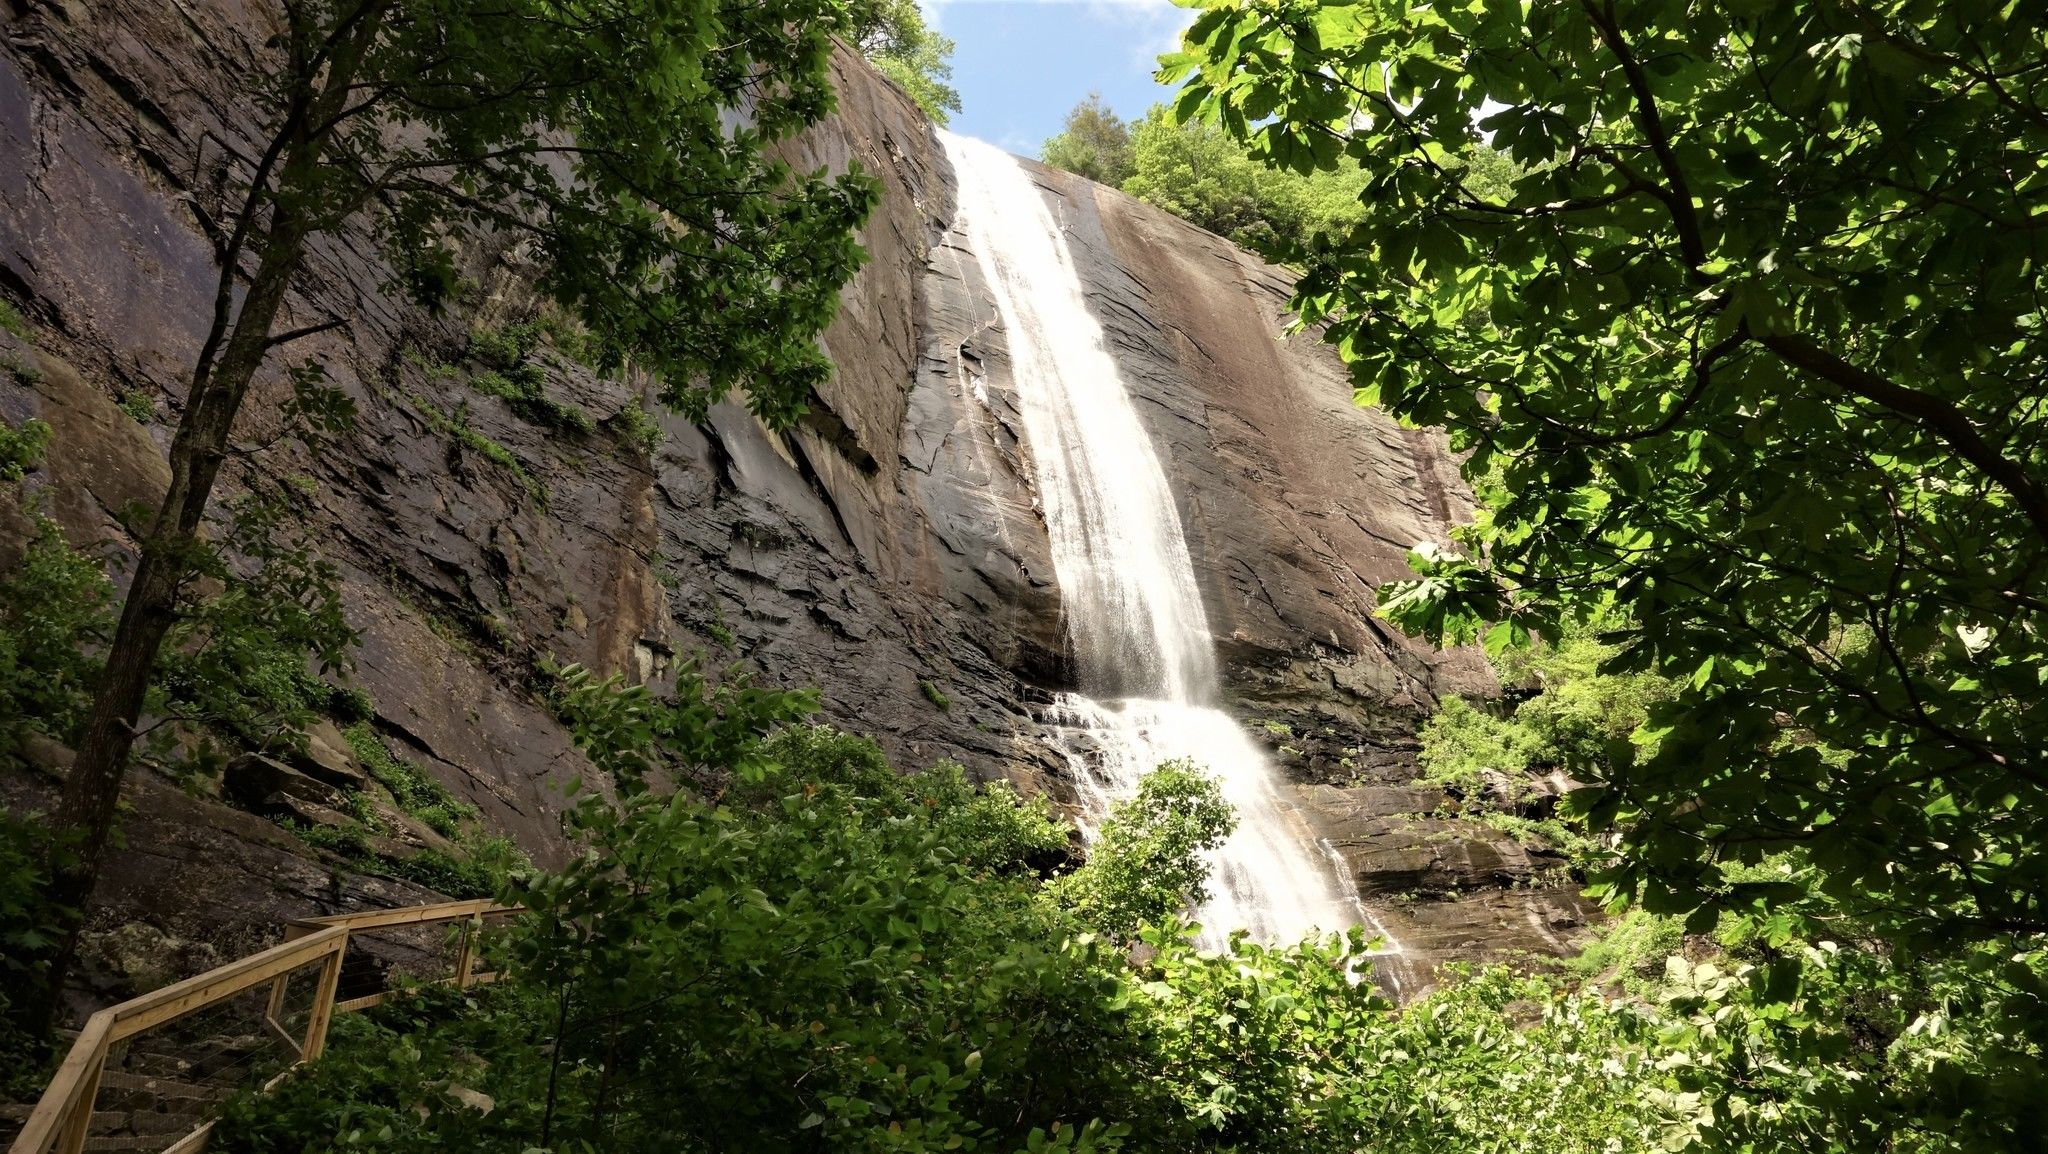 The Short And Sweet Hickory Nut Falls Trail Leads To The Second Tallest Waterfall In North Carolina